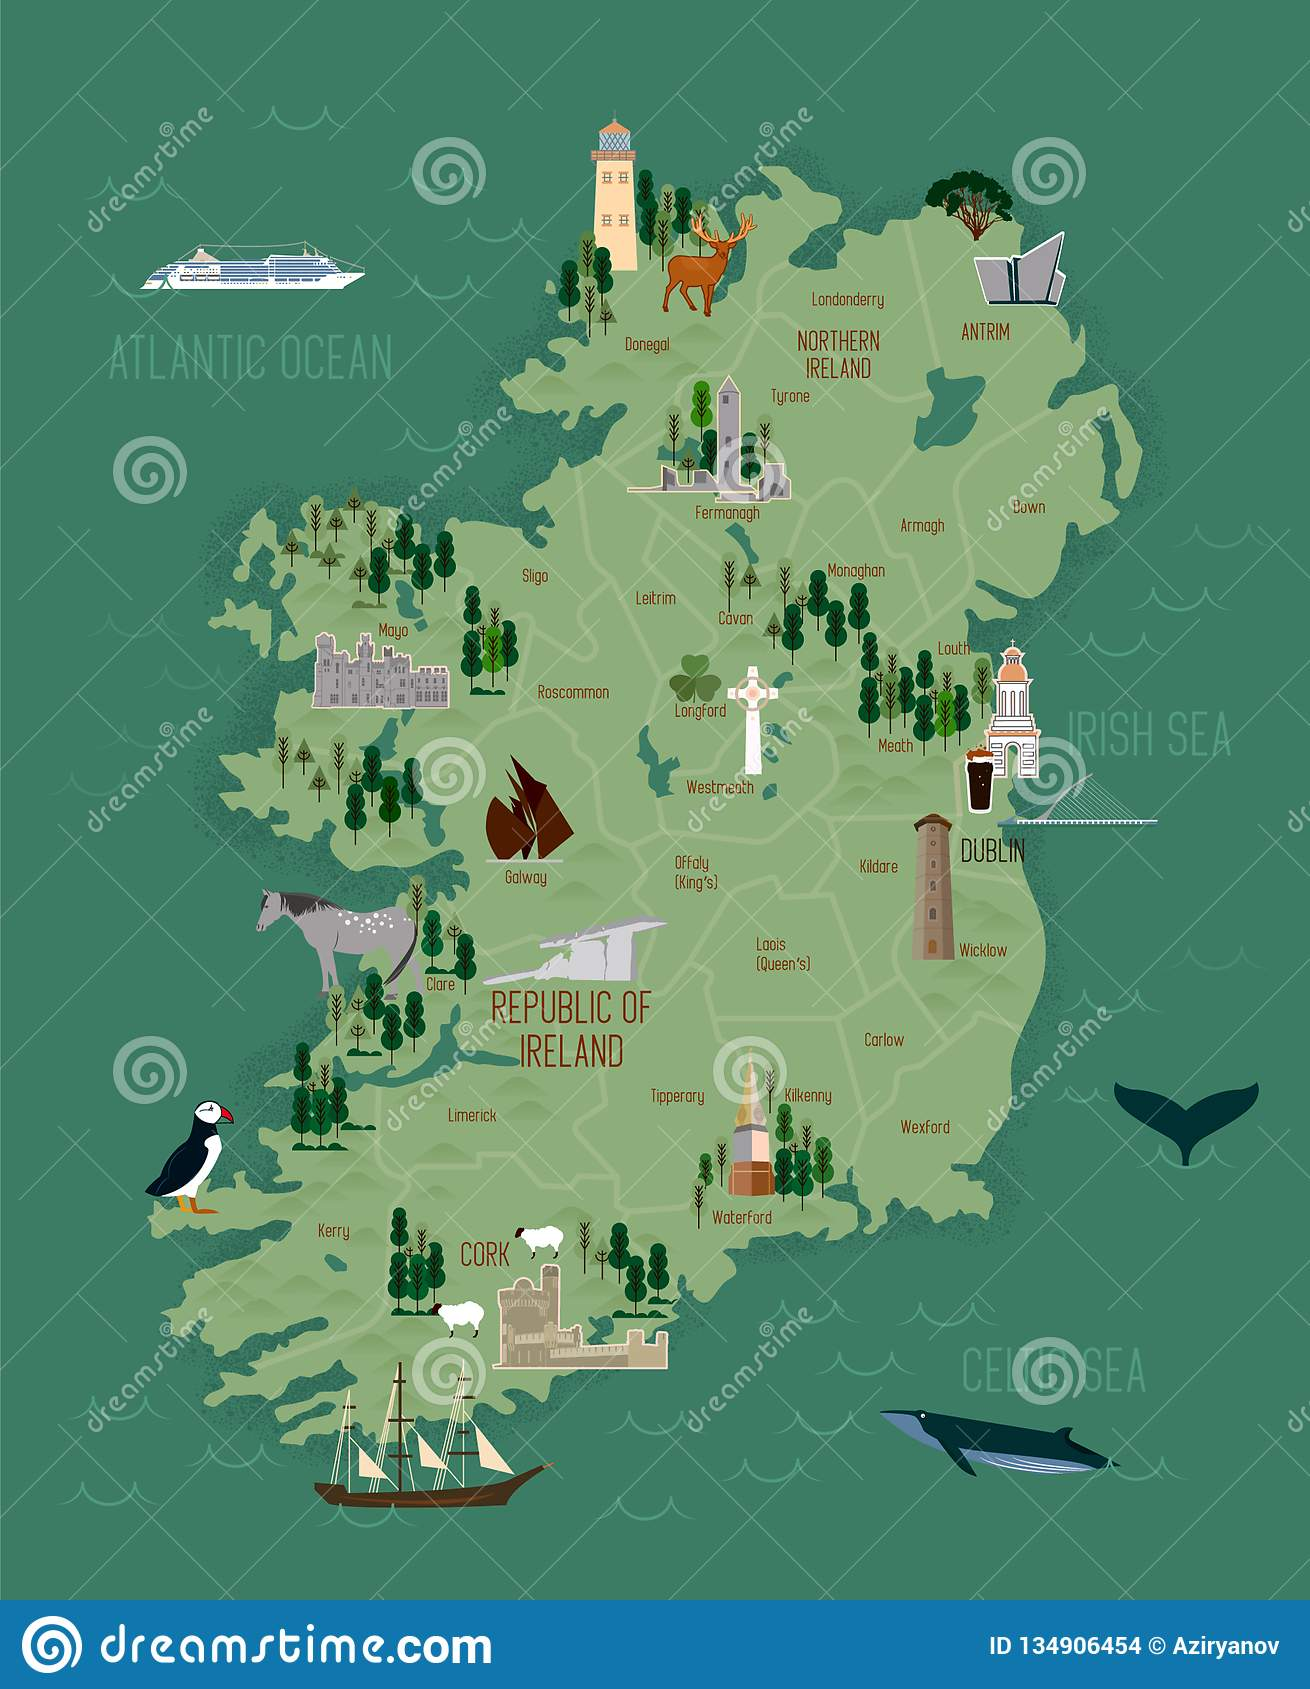 Vector Illustration Of Ireland Map Stock Vector ... on map of netherlands, map of european countries, map of japan, map of britain, map of british isles, map of dublin, map of skellig islands, map of denmark, map of united kingdom, map of ring of kerry, map of united states, map of prince edward island, map of eastern hemisphere, map of yugoslavia, map of northeast us, map of sweden, map of scotland, map of london, map of hong kong, map of philippines,